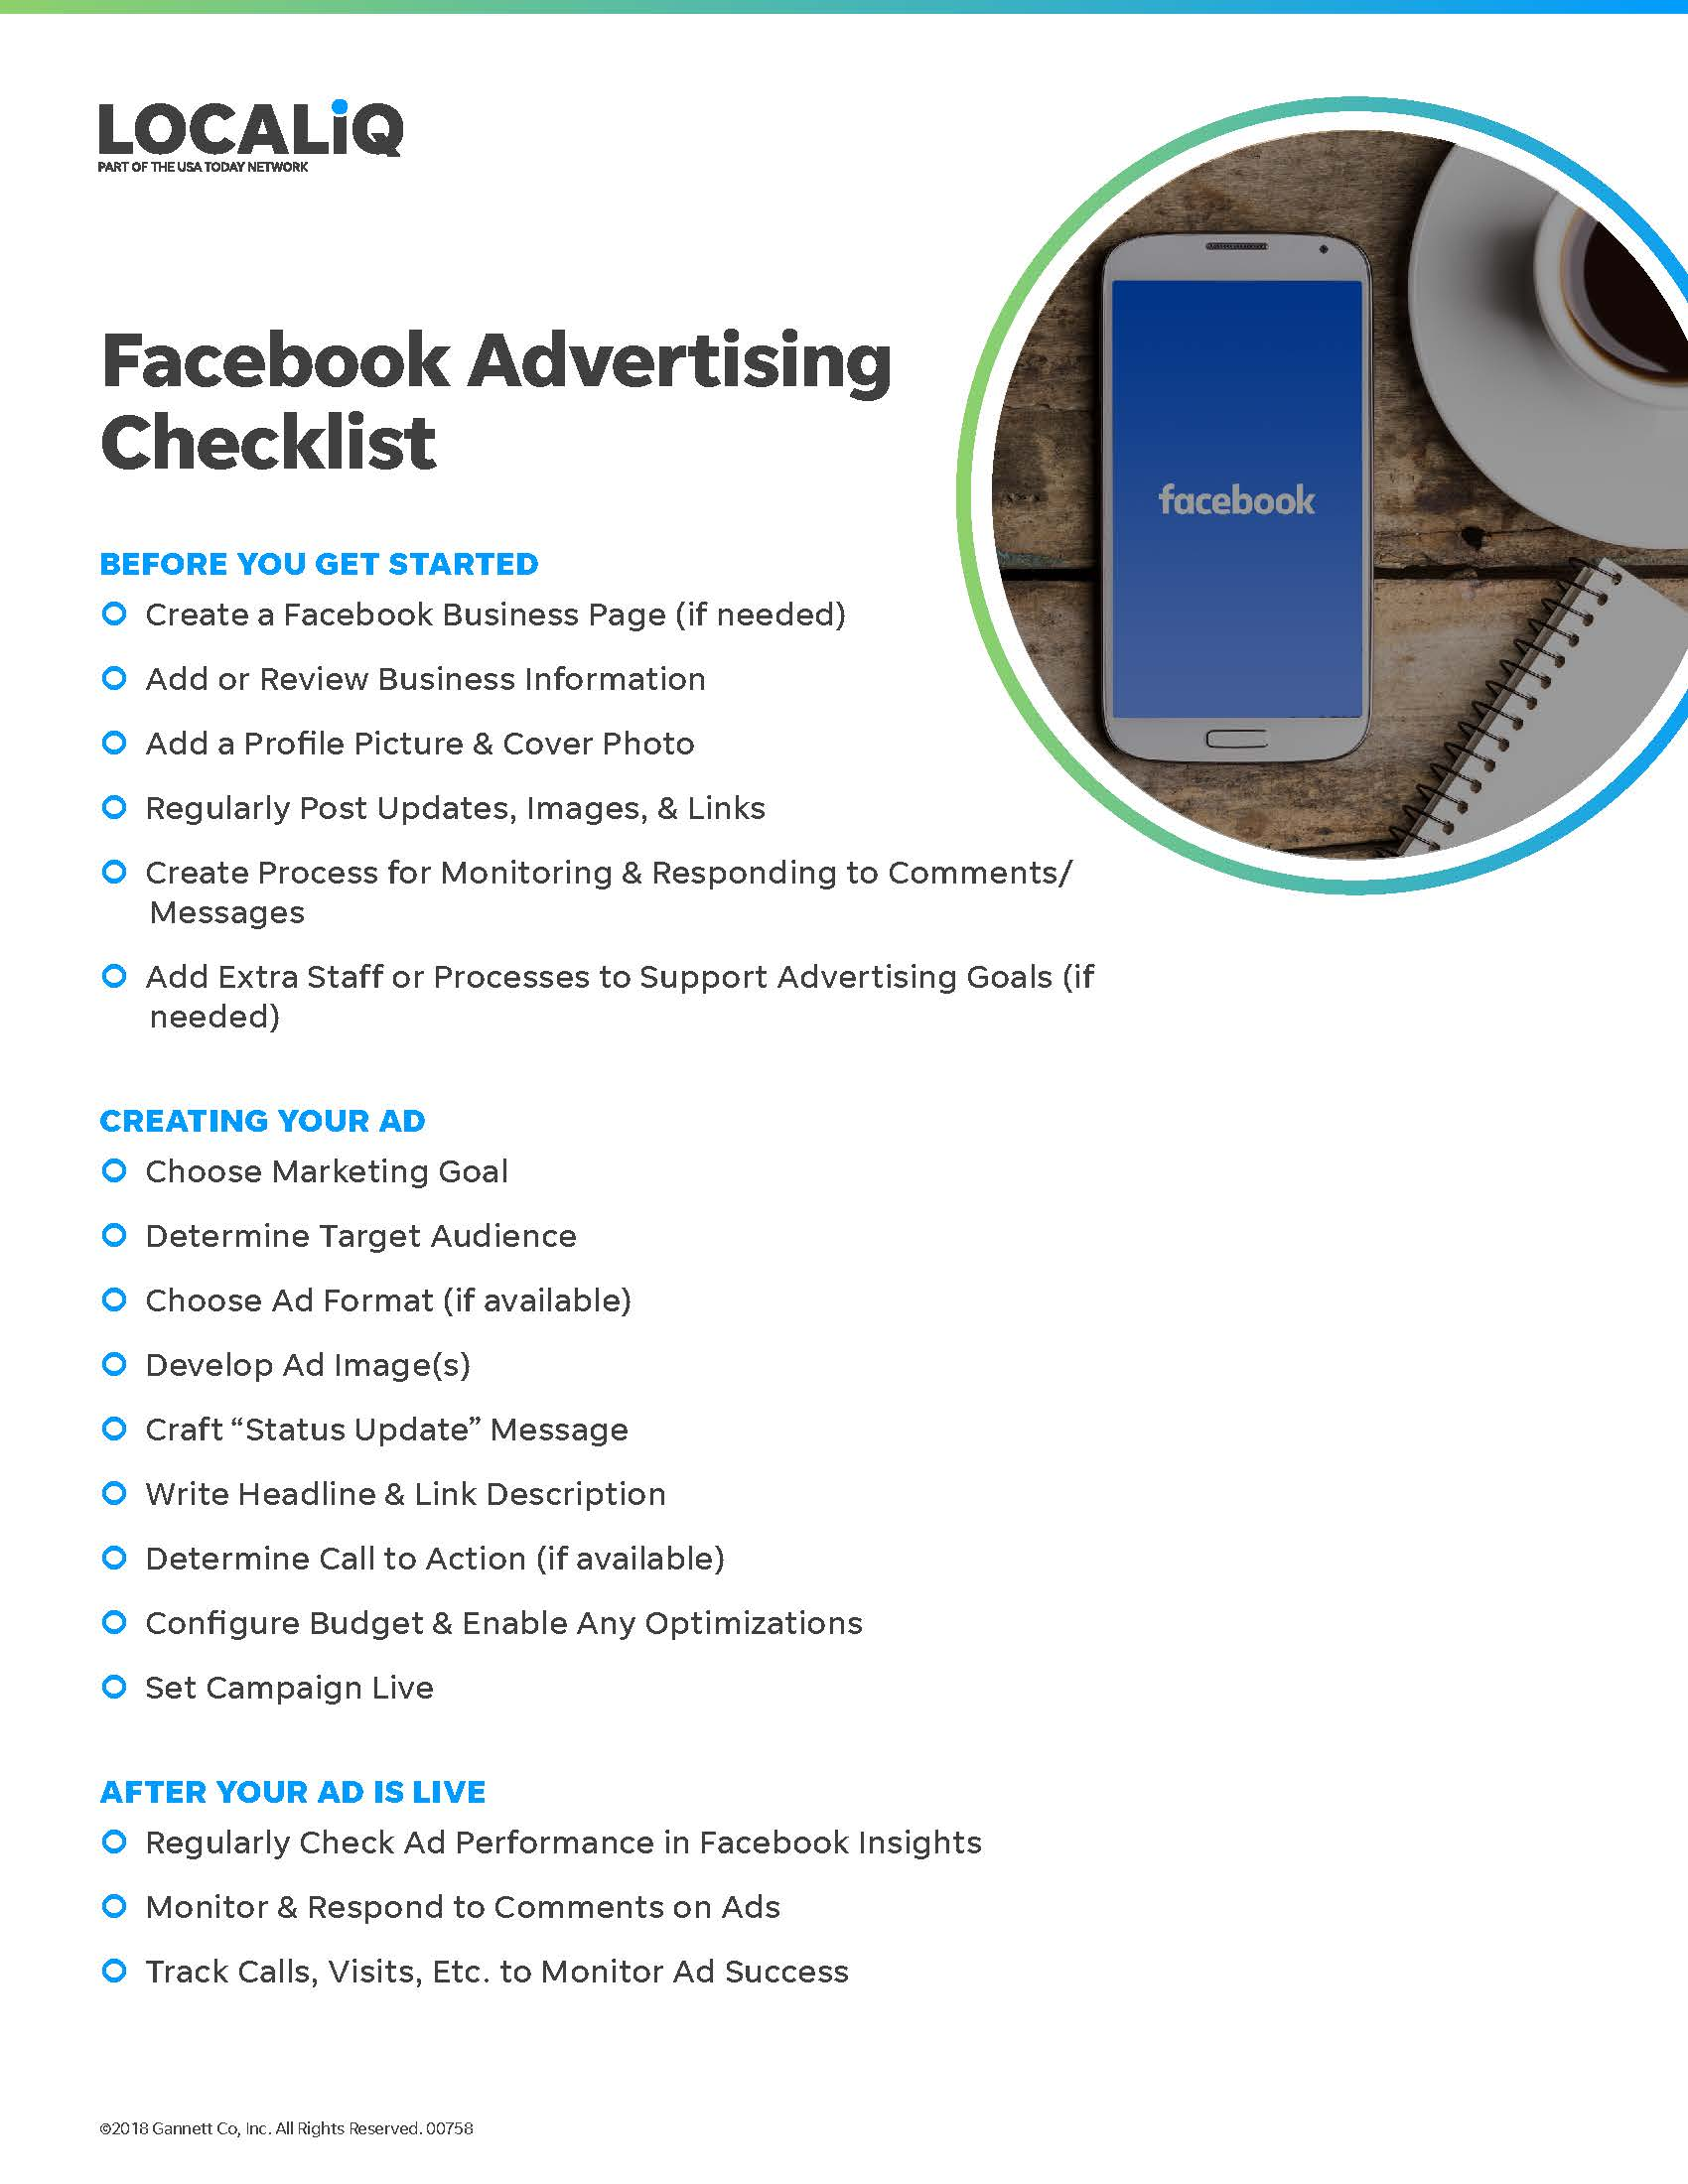 Getting Started: Your Facebook Advertising Checklist